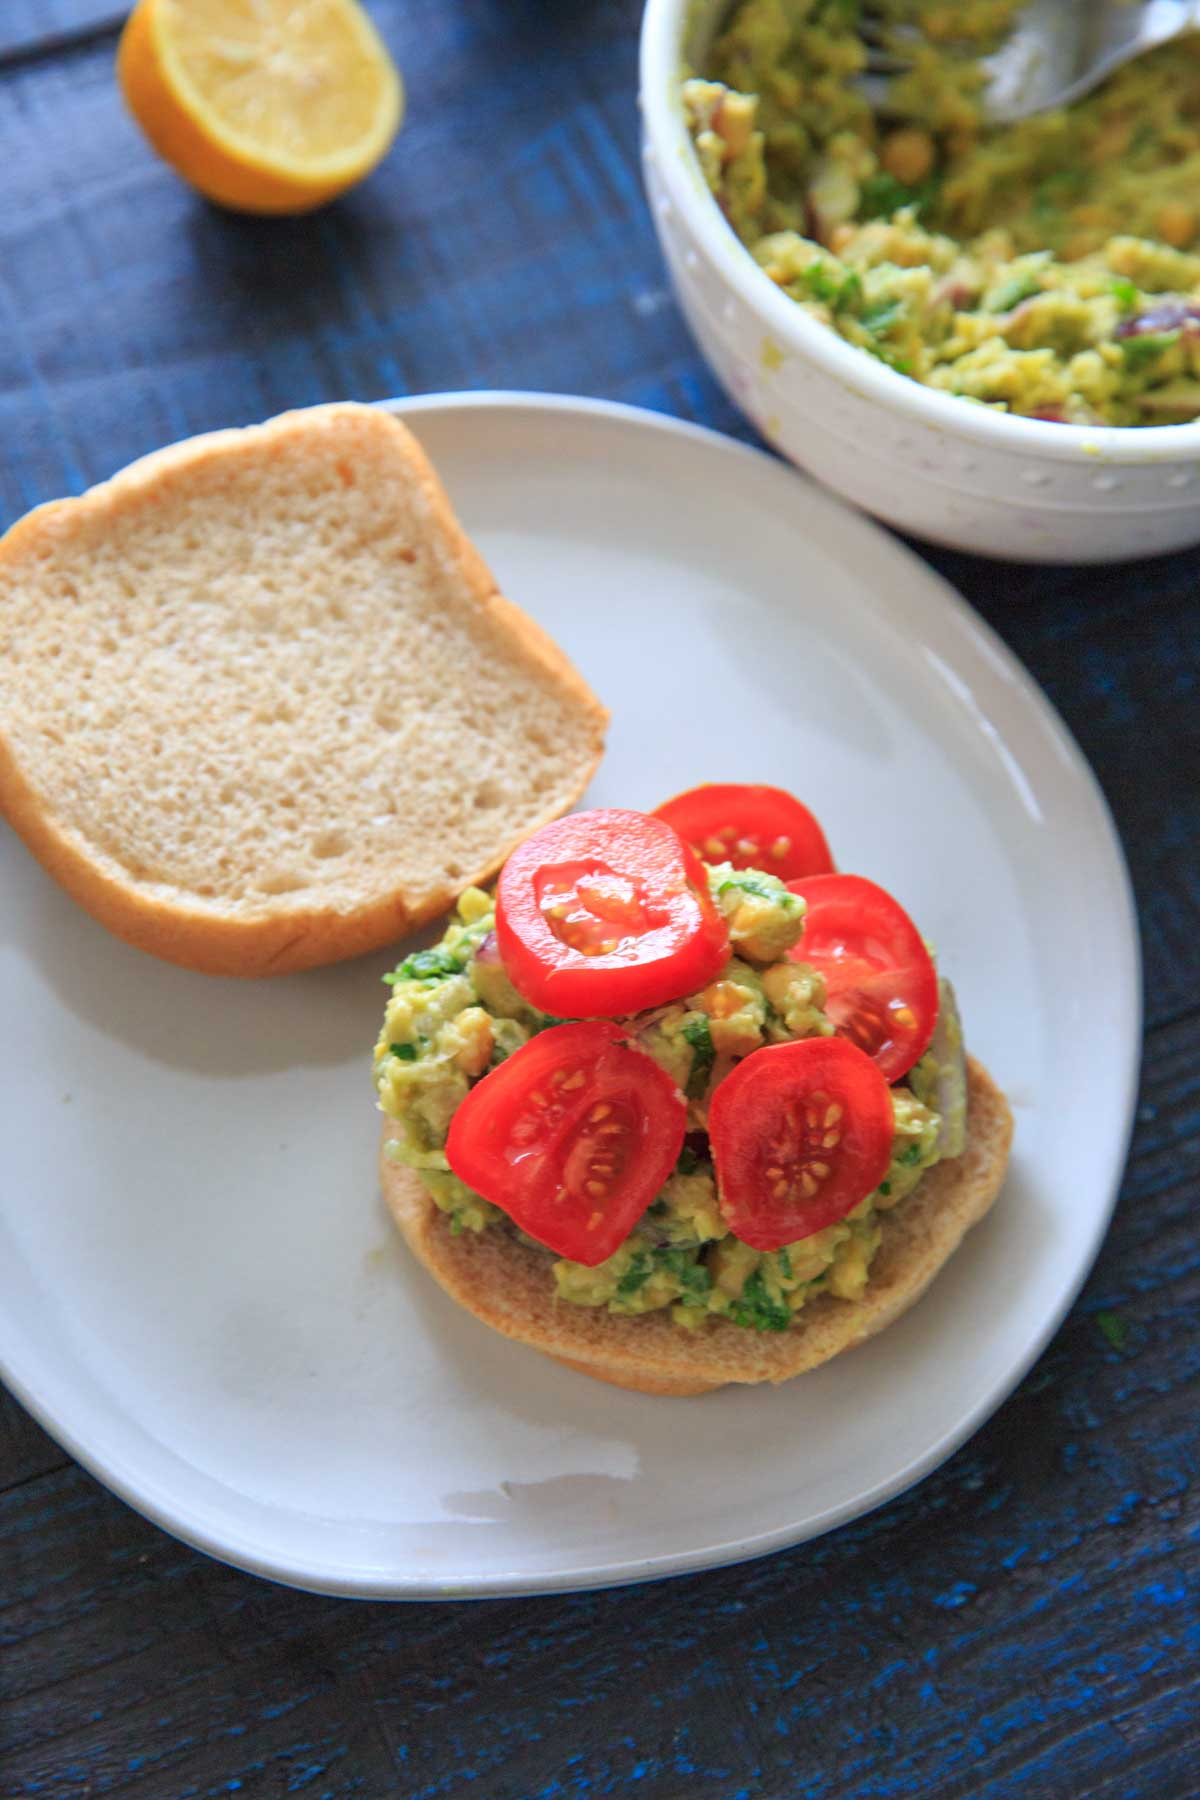 Smashed Avocado and Chickpea Salad on a bun with tomato